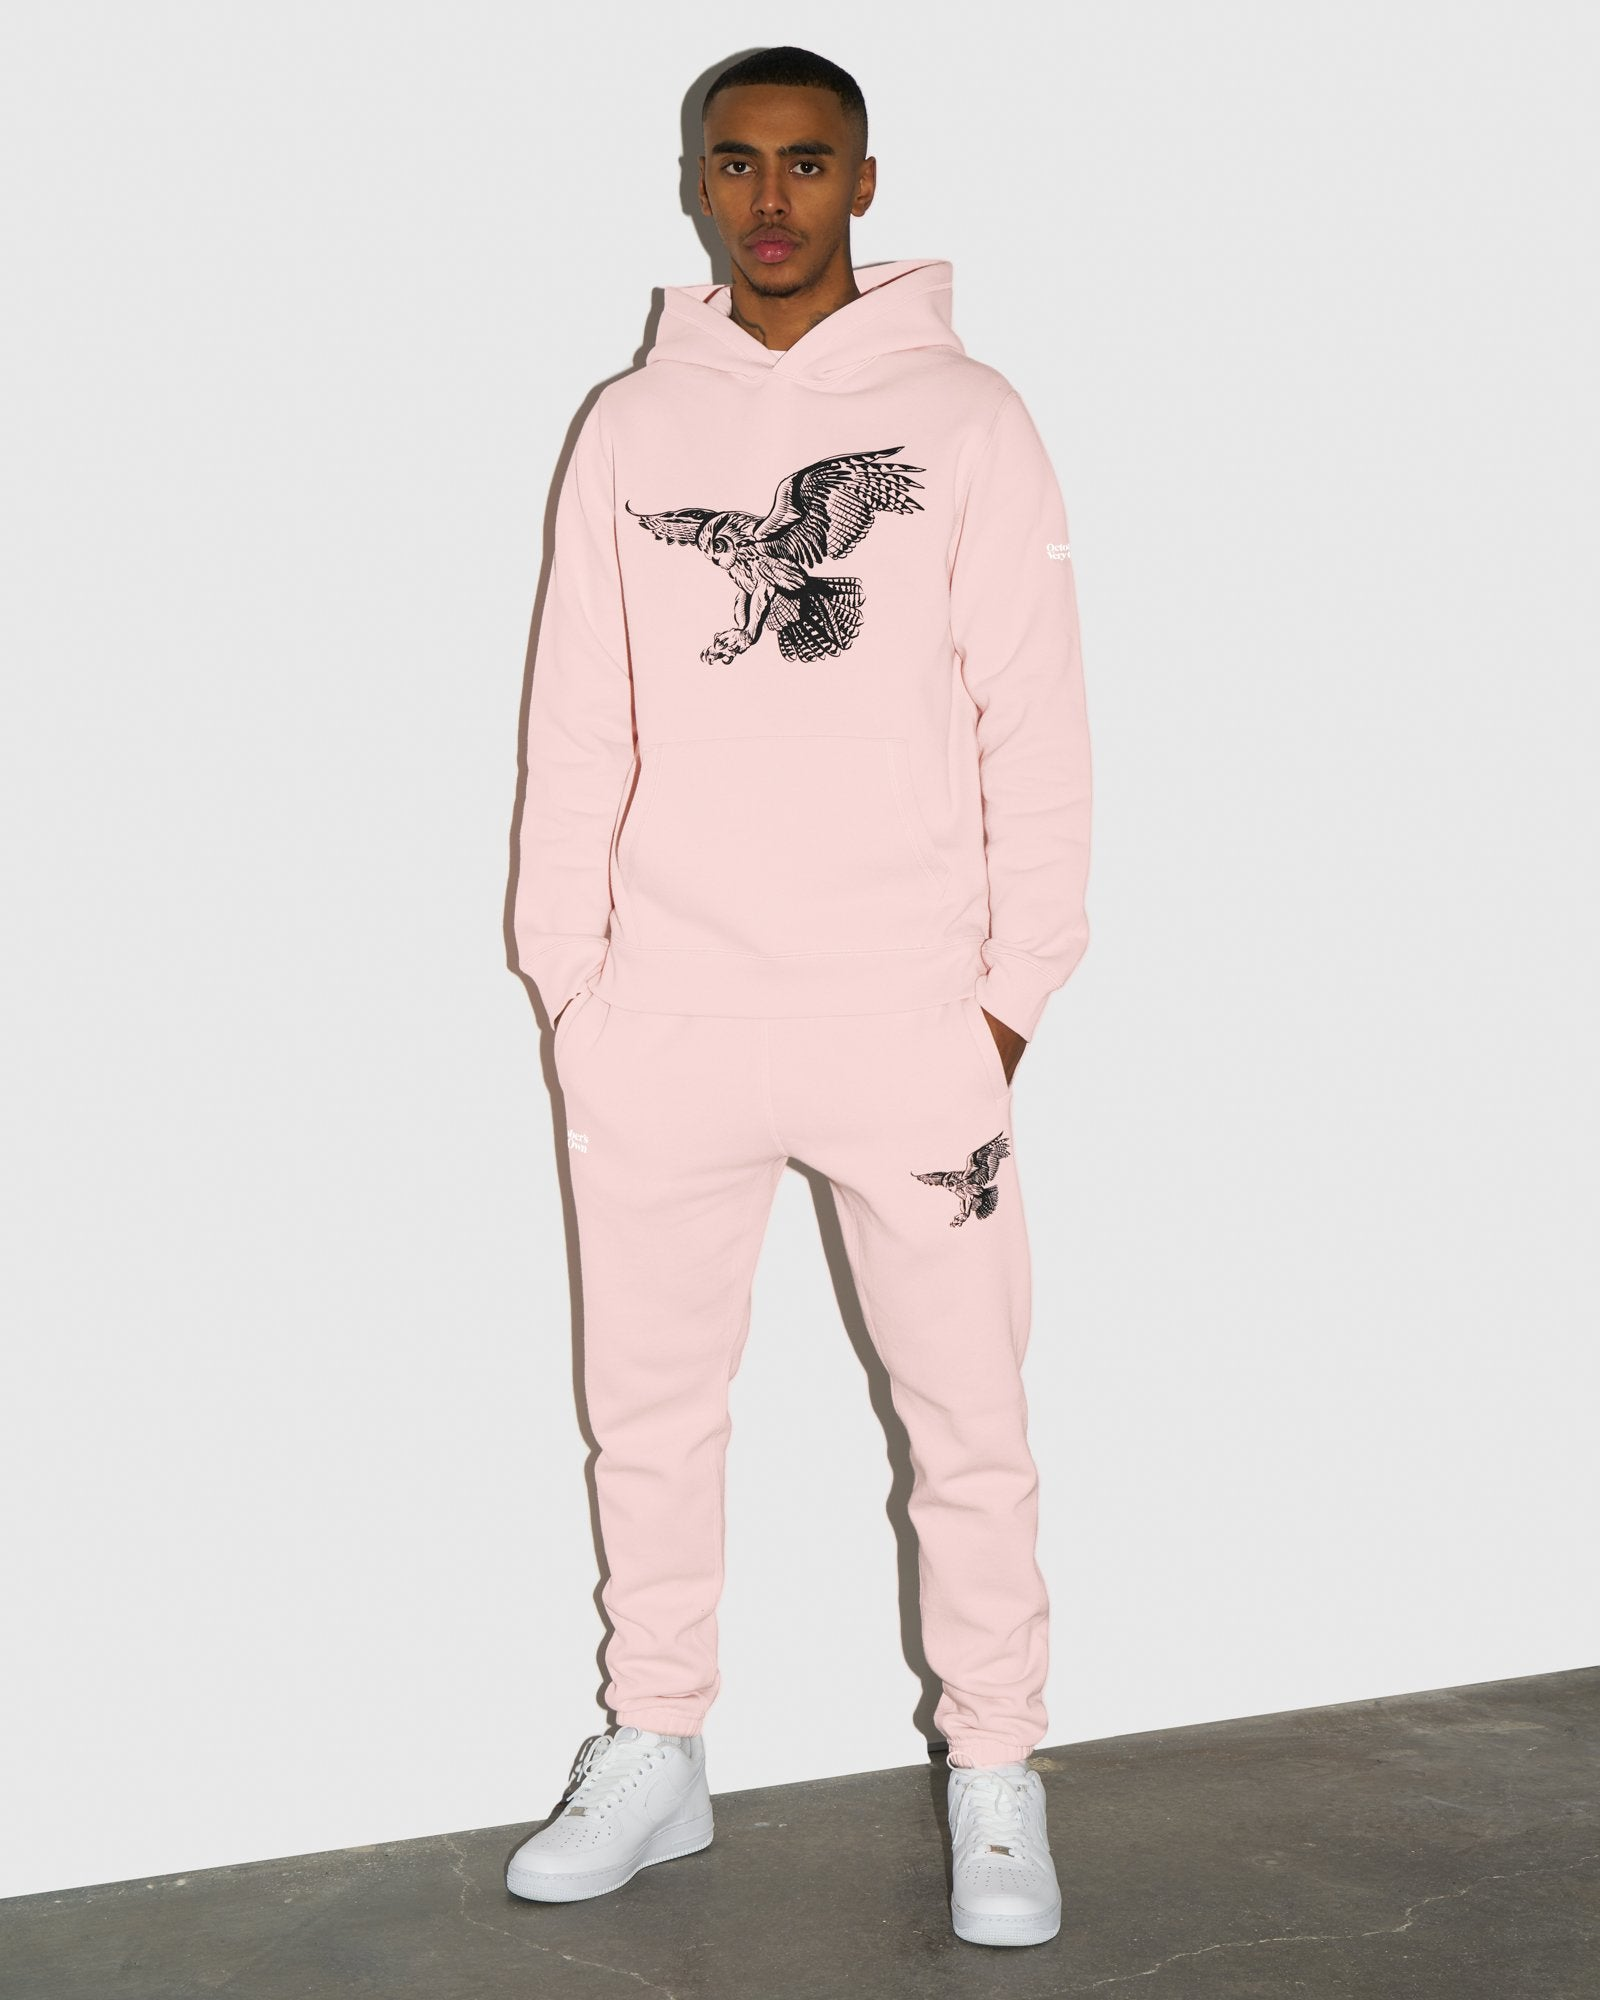 BIRD OF PREY SWEATPANT - PINK IMAGE #2